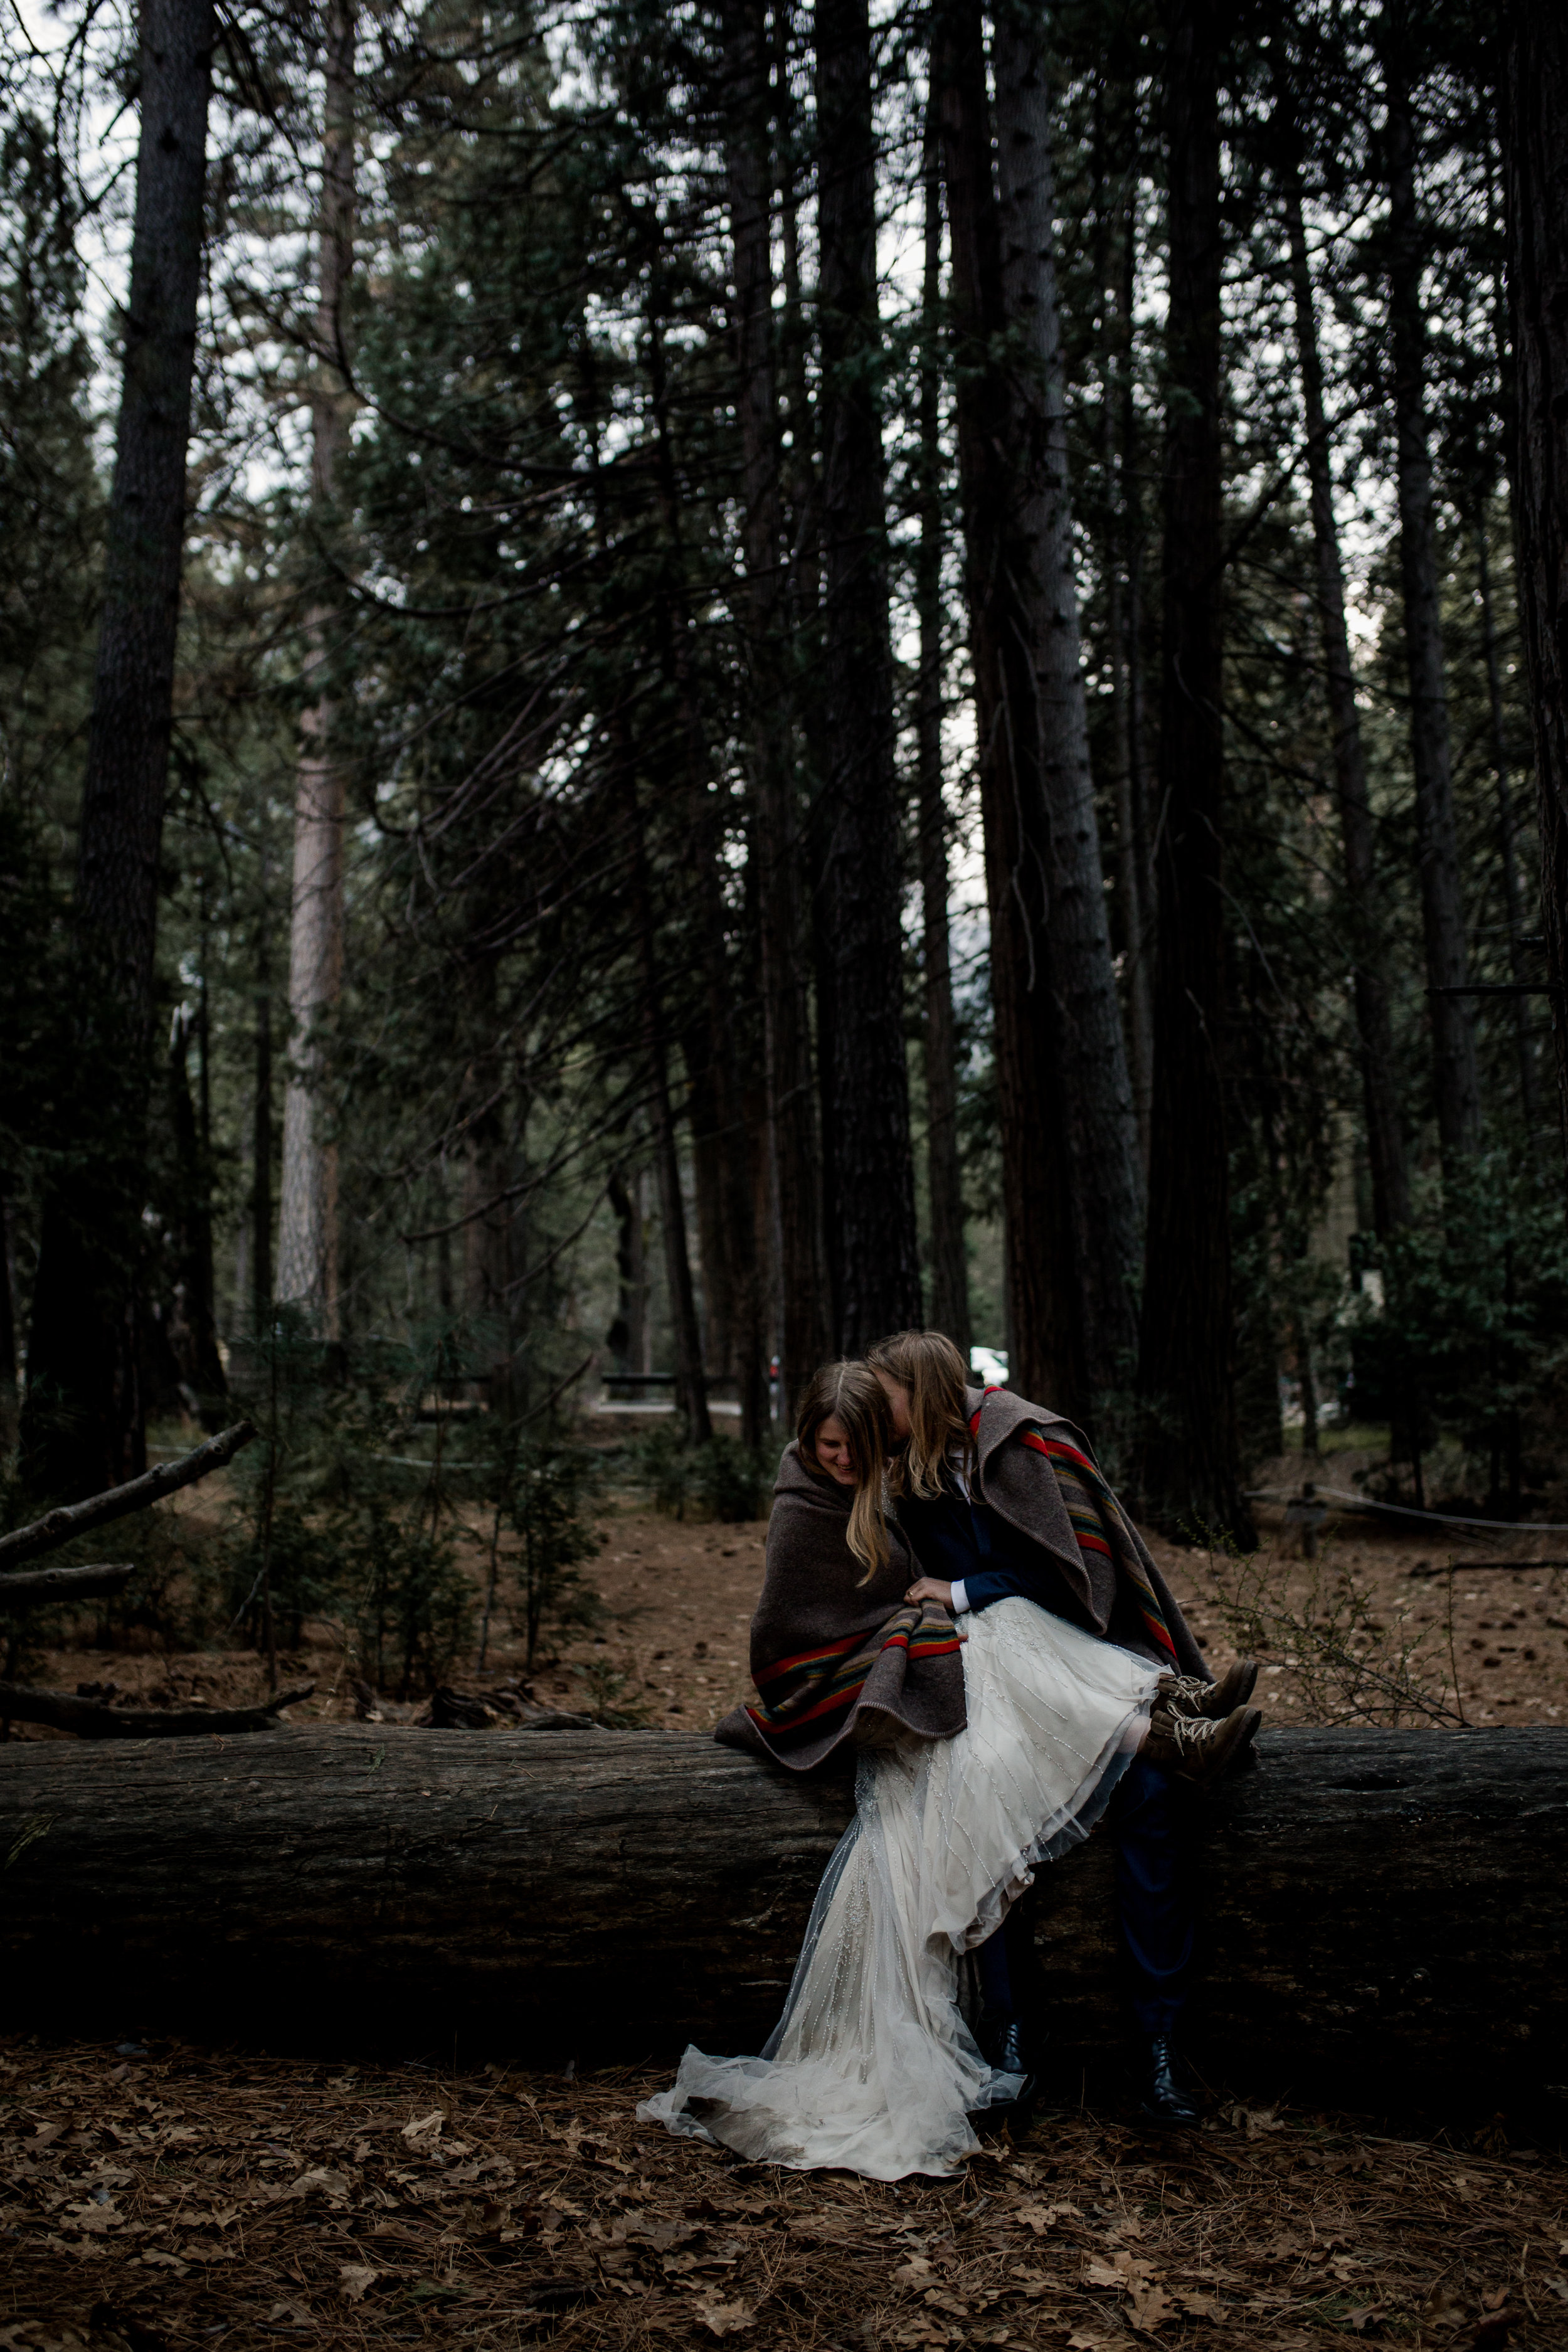 nicole-daacke-photography-yousemite-national-park-elopement-photographer-winter-cloud-moody-elope-inspiration-yosemite-valley-tunnel-view-winter-cloud-fog-weather-wedding-photos-100.jpg